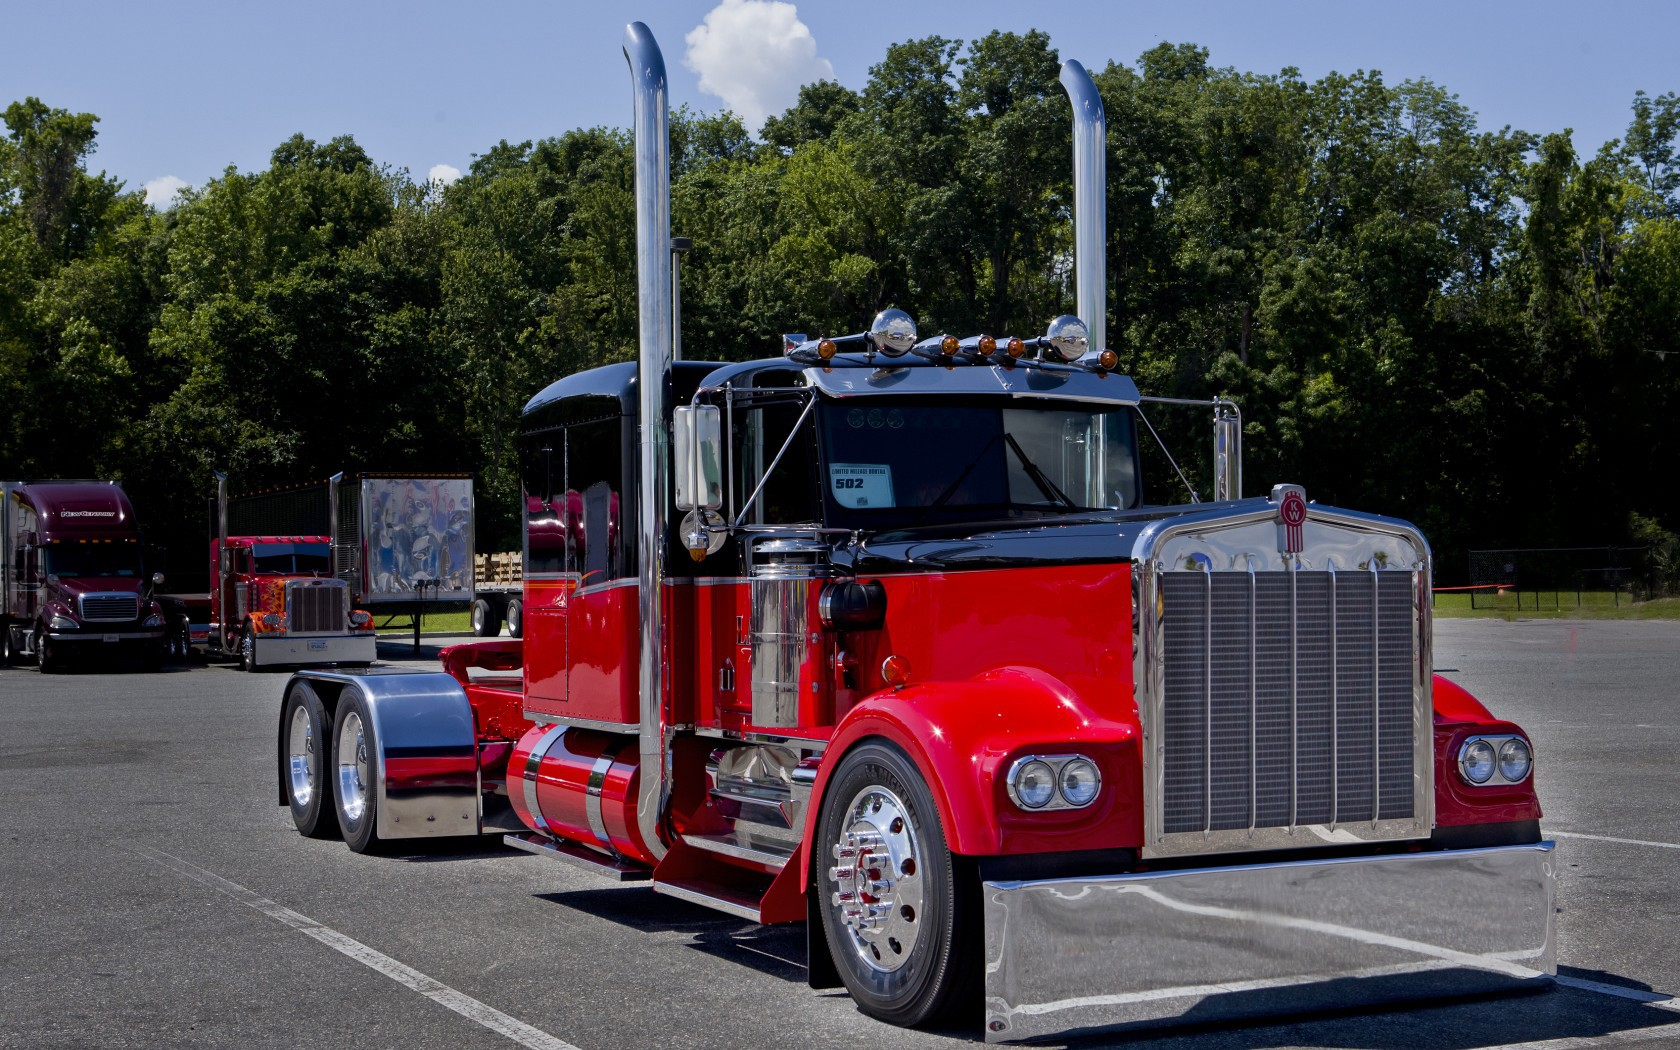 Peterbilt 389 in addition Toy Car Display Ideas also 2015 Vario Perfect 1100 motorhome c er bus luxury semi tractor also Free Download Semi Truck Wallpapers furthermore Kenworth W900L POW MIA 608758576. on cool semi truck trailers